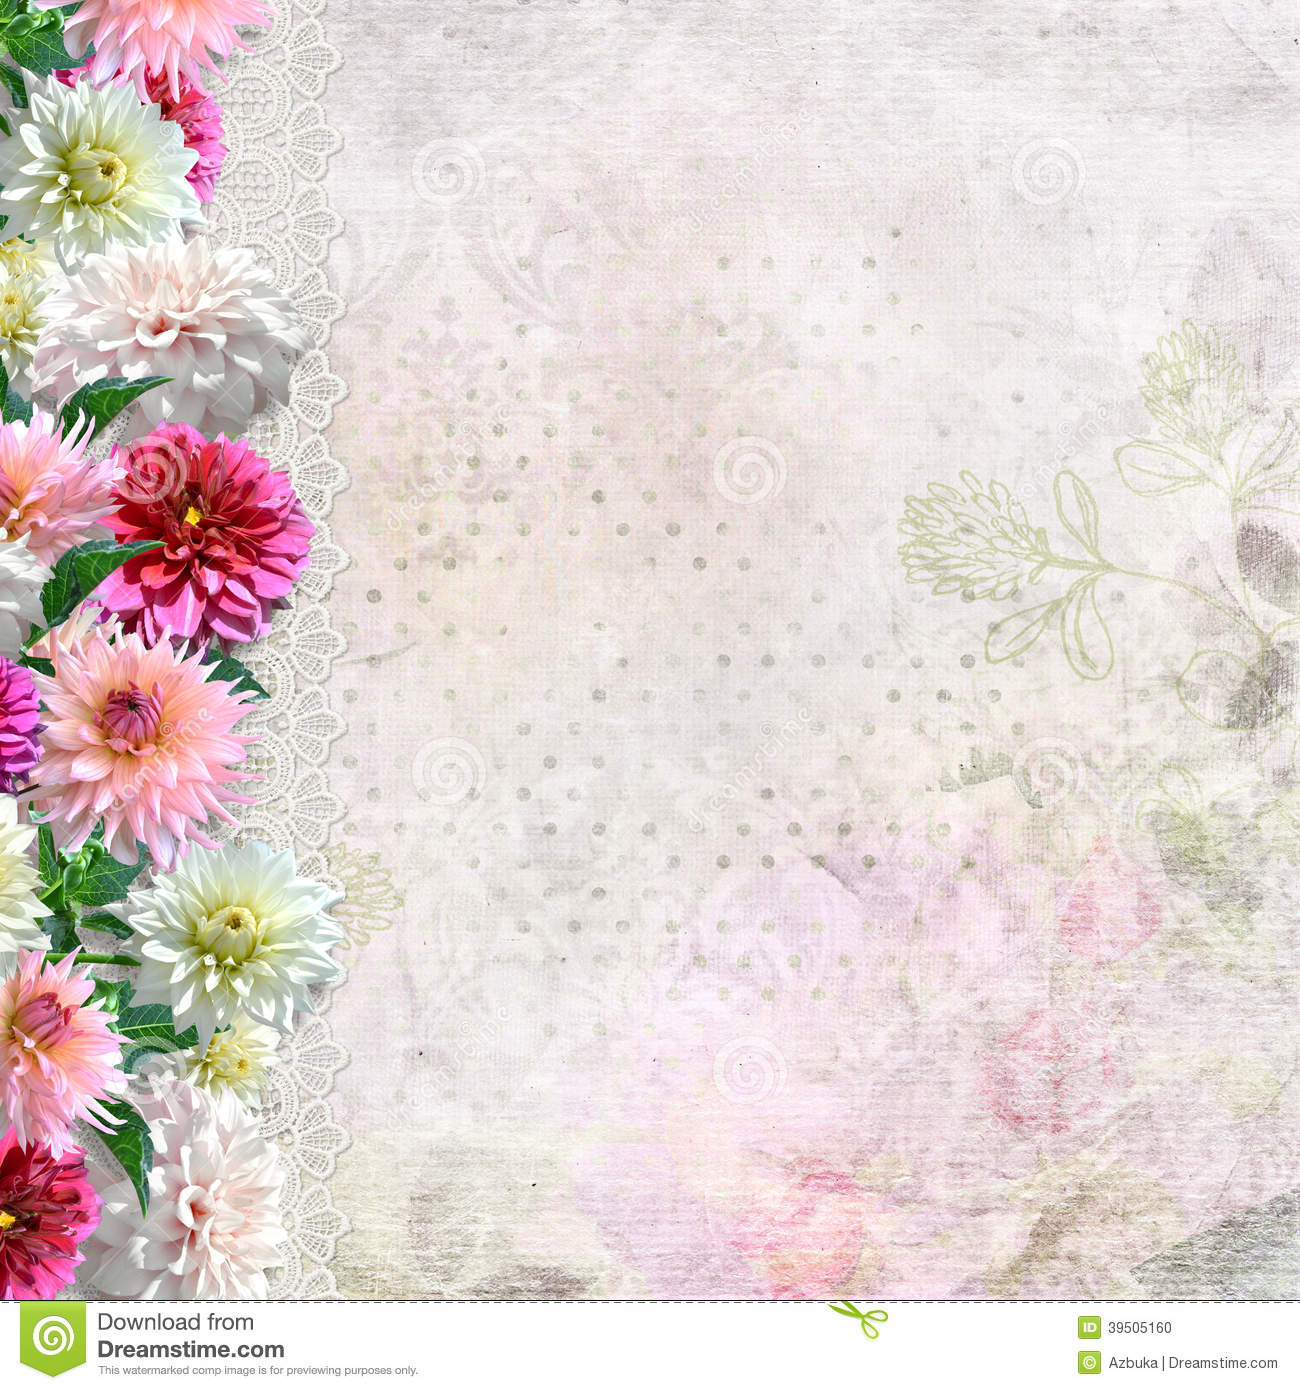 Border of flowers on a gentle background